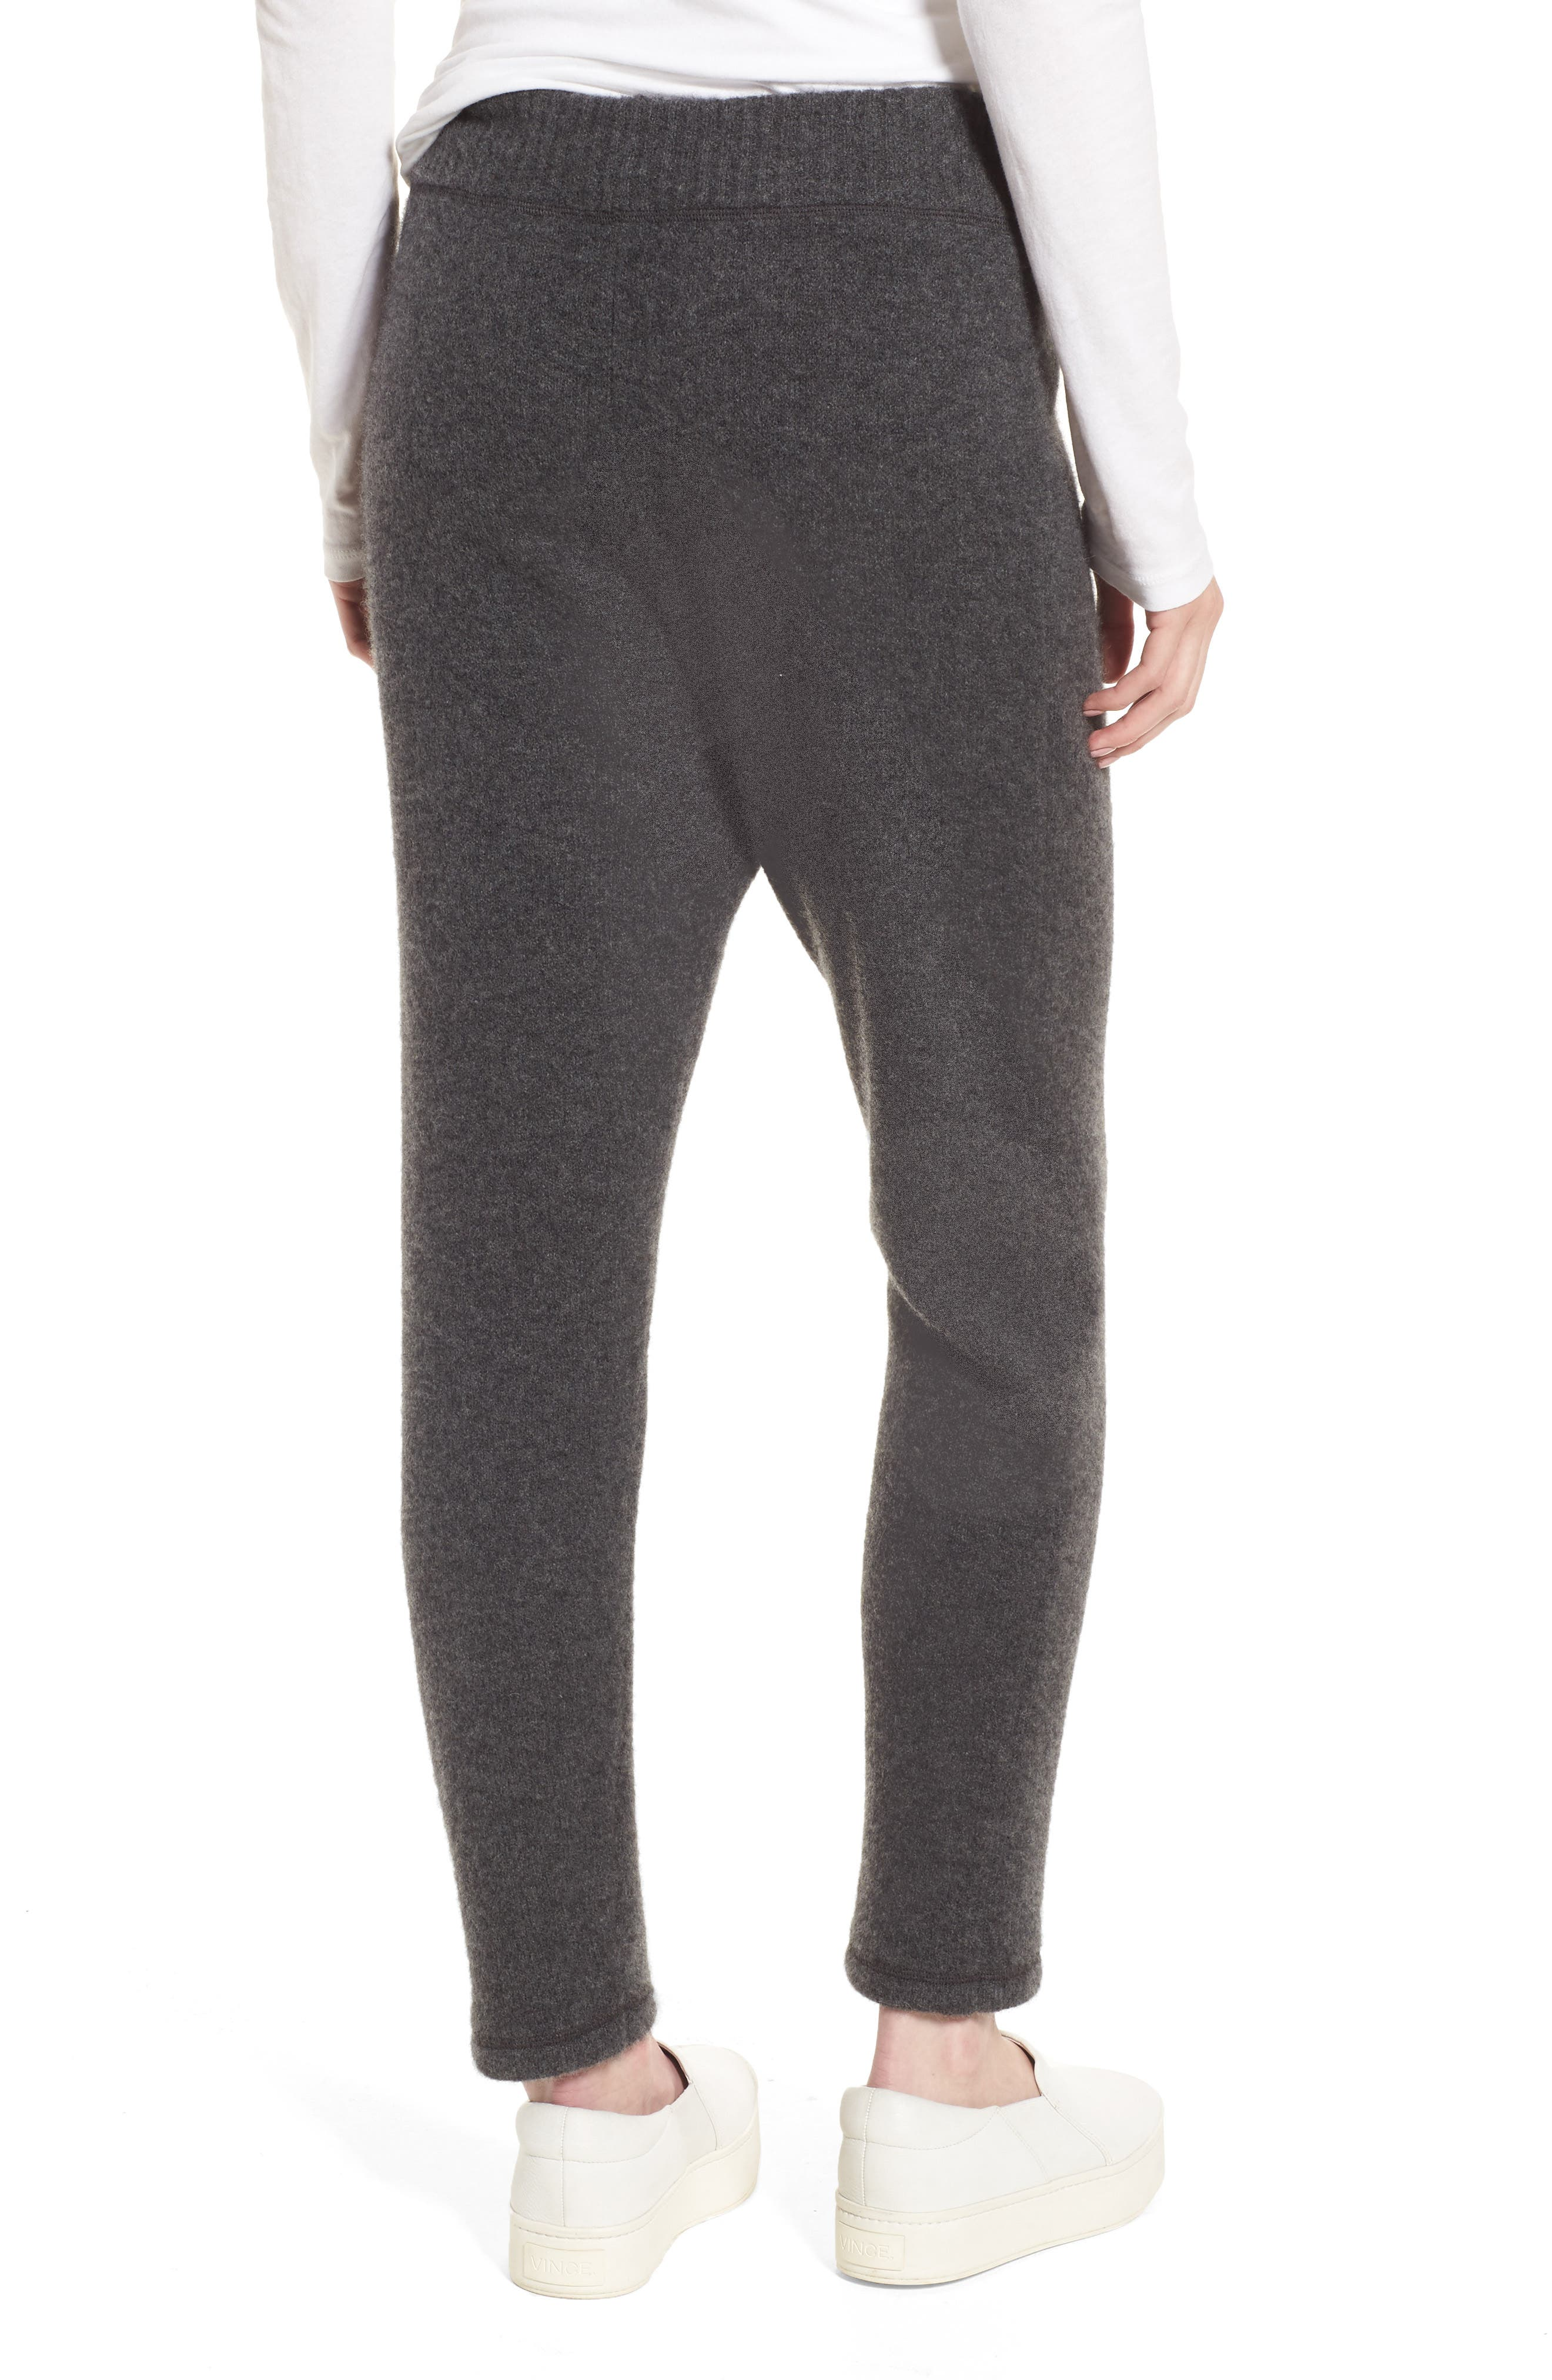 Brushed Cashmere Sweatpants,                             Alternate thumbnail 2, color,                             069